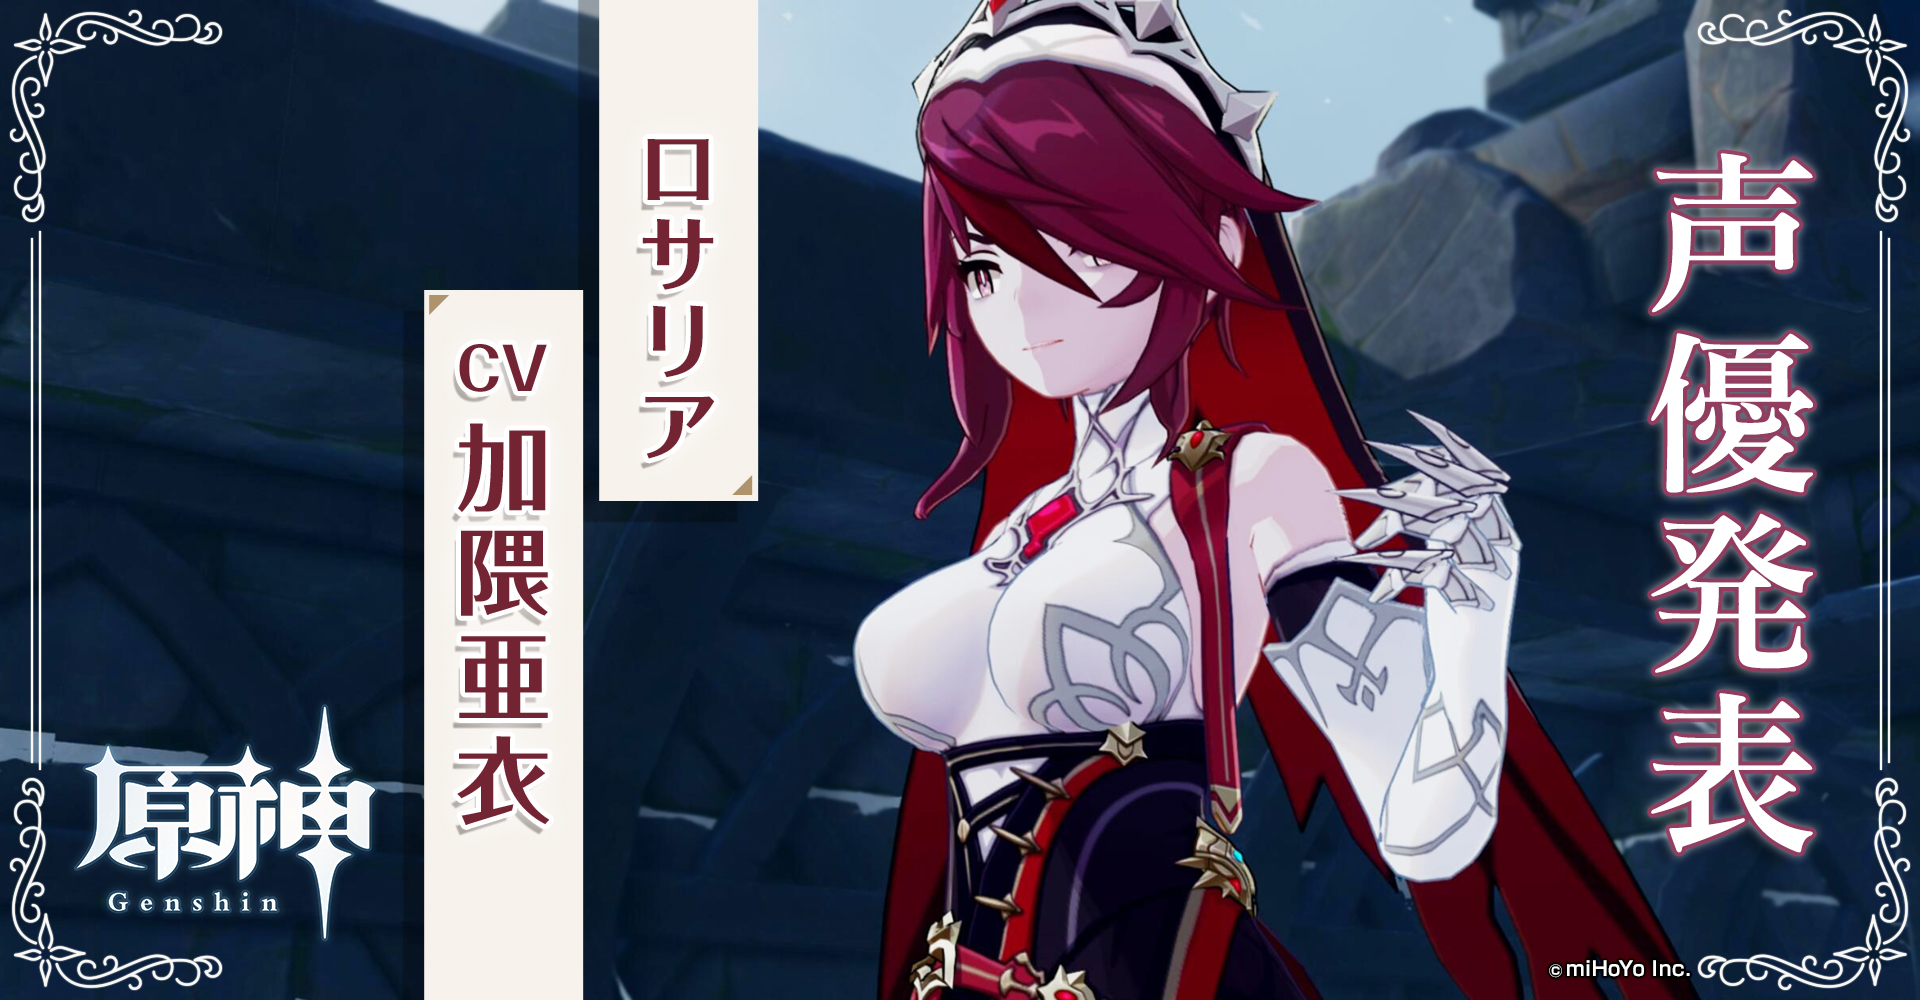 Rosaria as seen in the Japanese voice actress reveal trailer for Genshin Impact